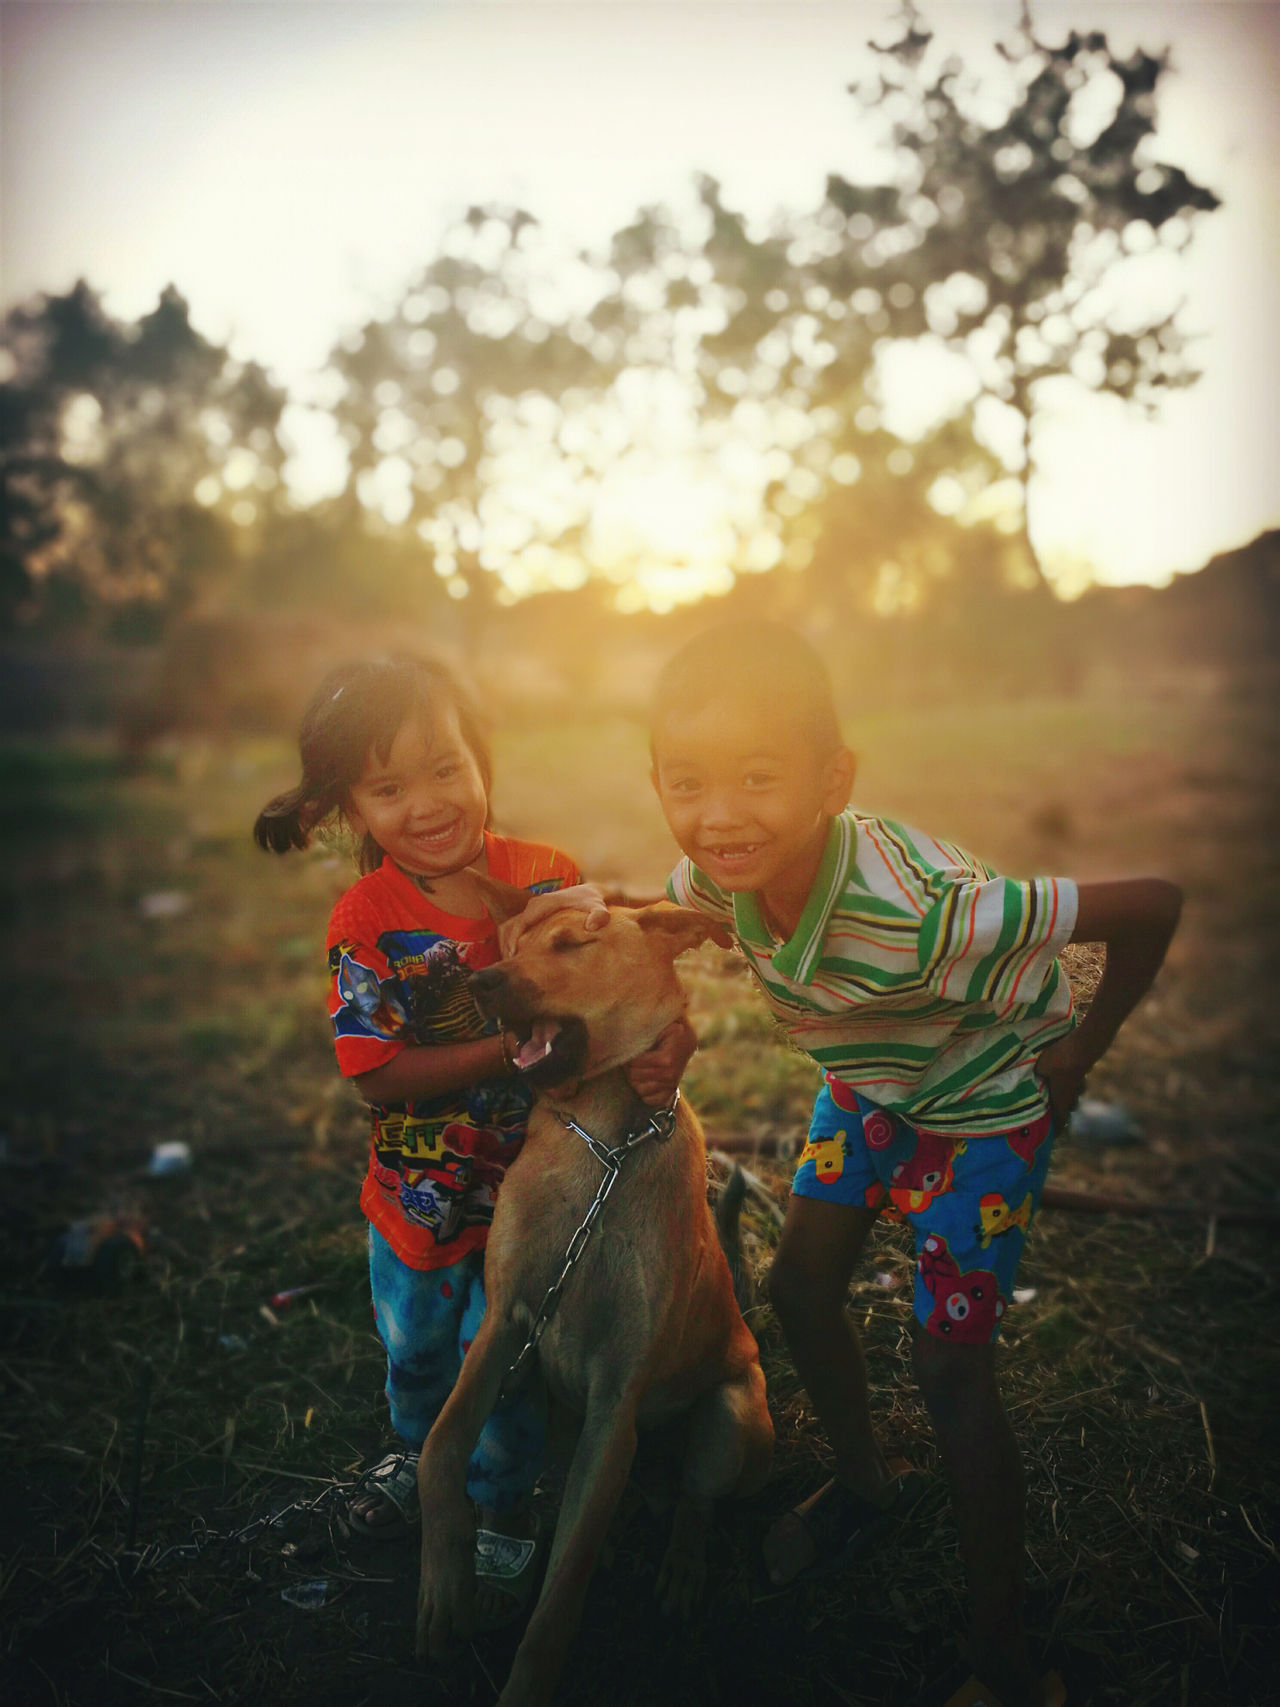 Sunset Smile Two People Togetherness Child Family Smiling Sunset Happiness Offspring People Outdoors Females Nature Adult Cheerful Light Effect Wheat Day